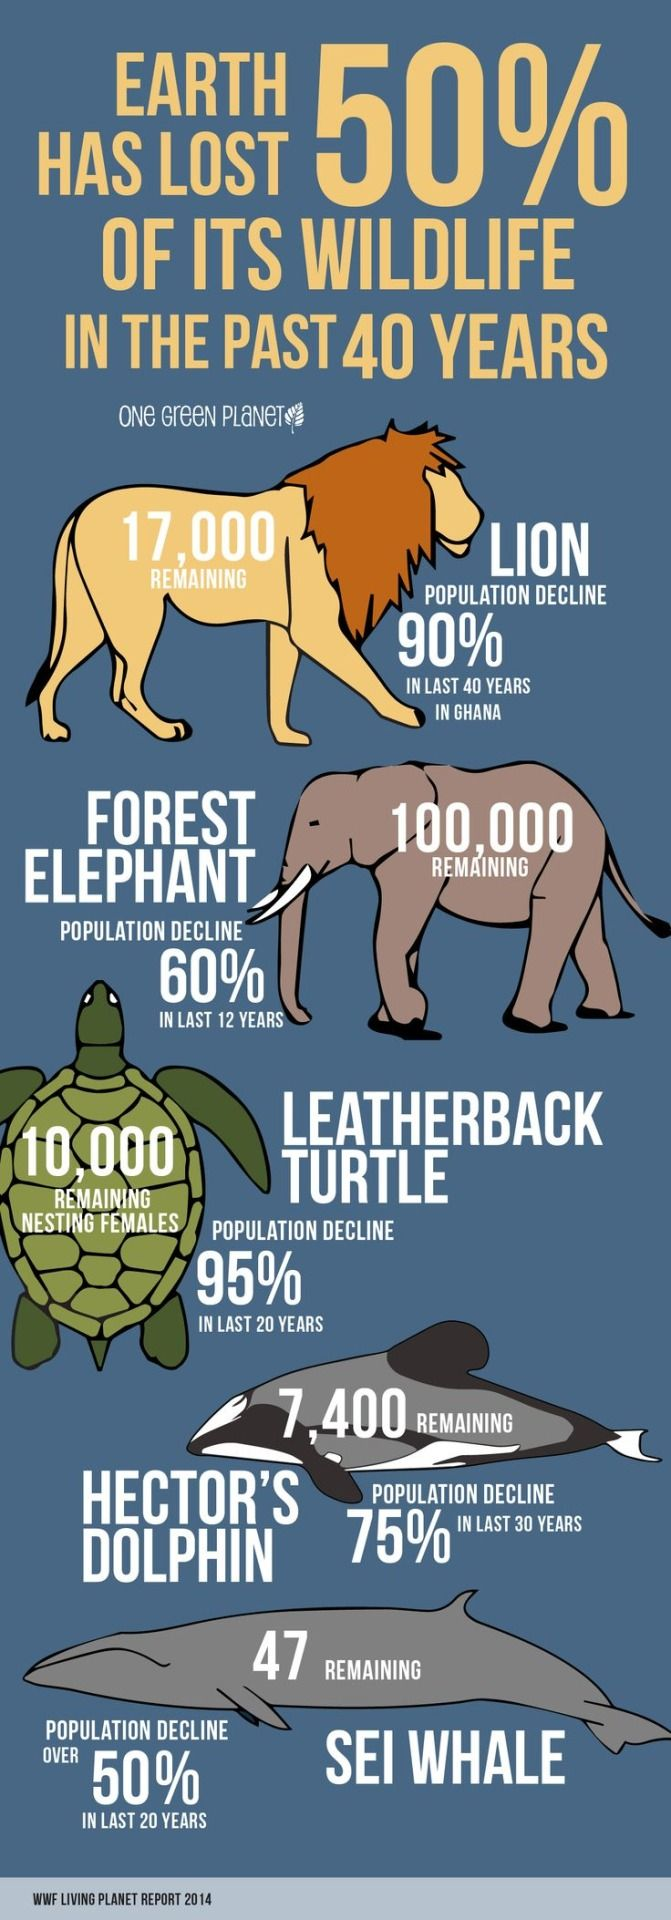 Declining animal populations >> This is why conservation is so important.